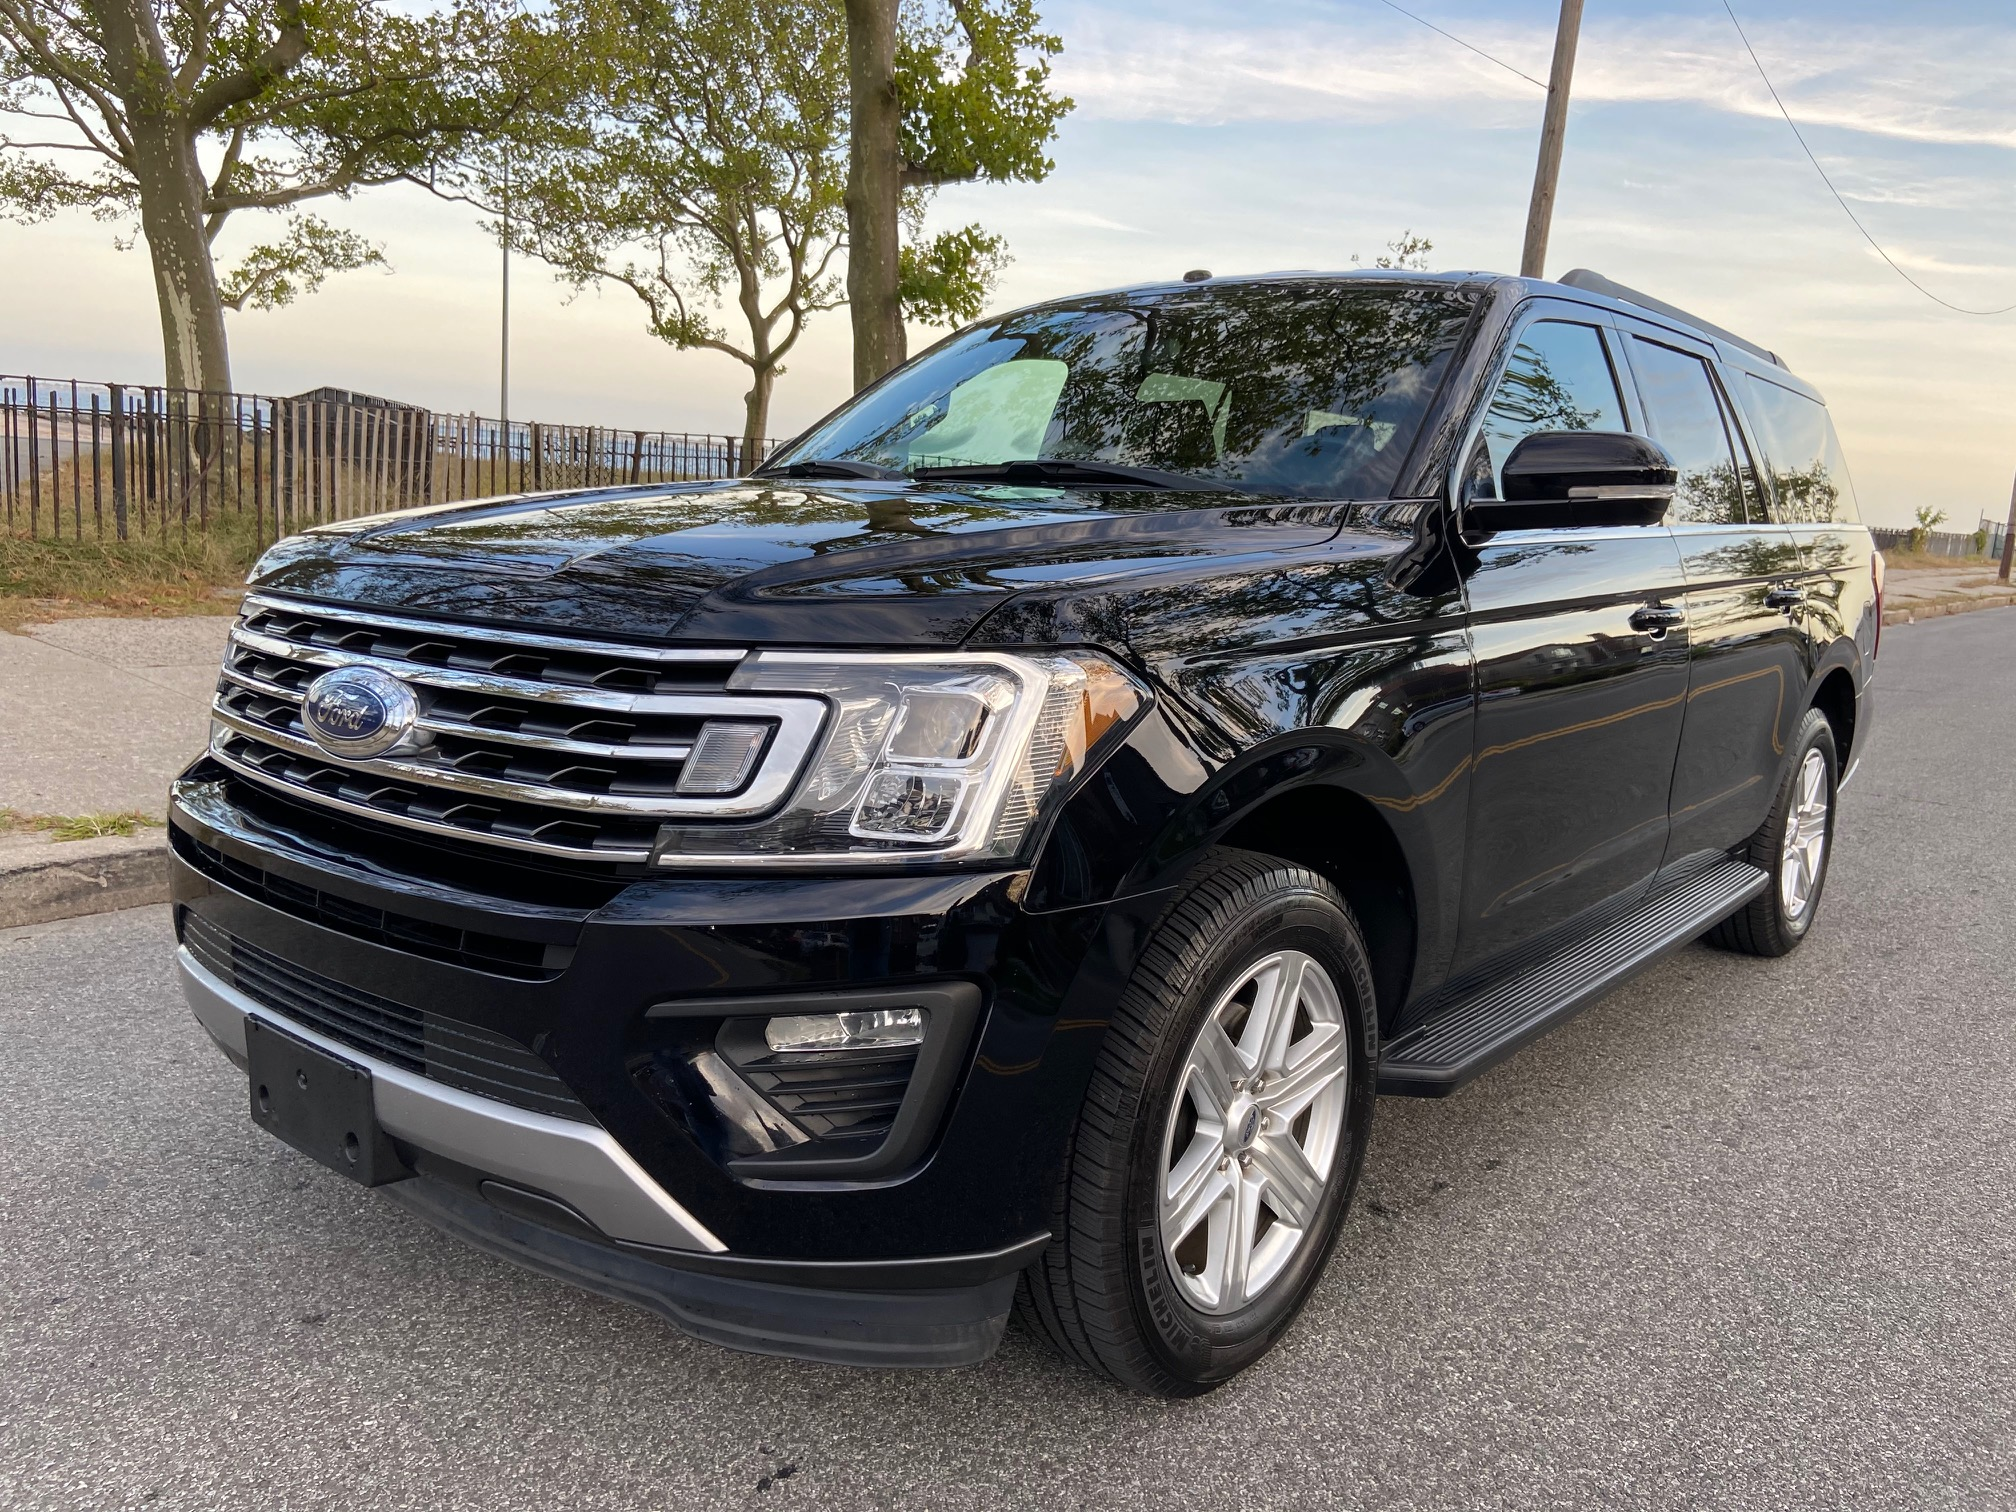 Used Car - 2018 Ford Expedition MAX XLT for Sale in Staten Island, NY